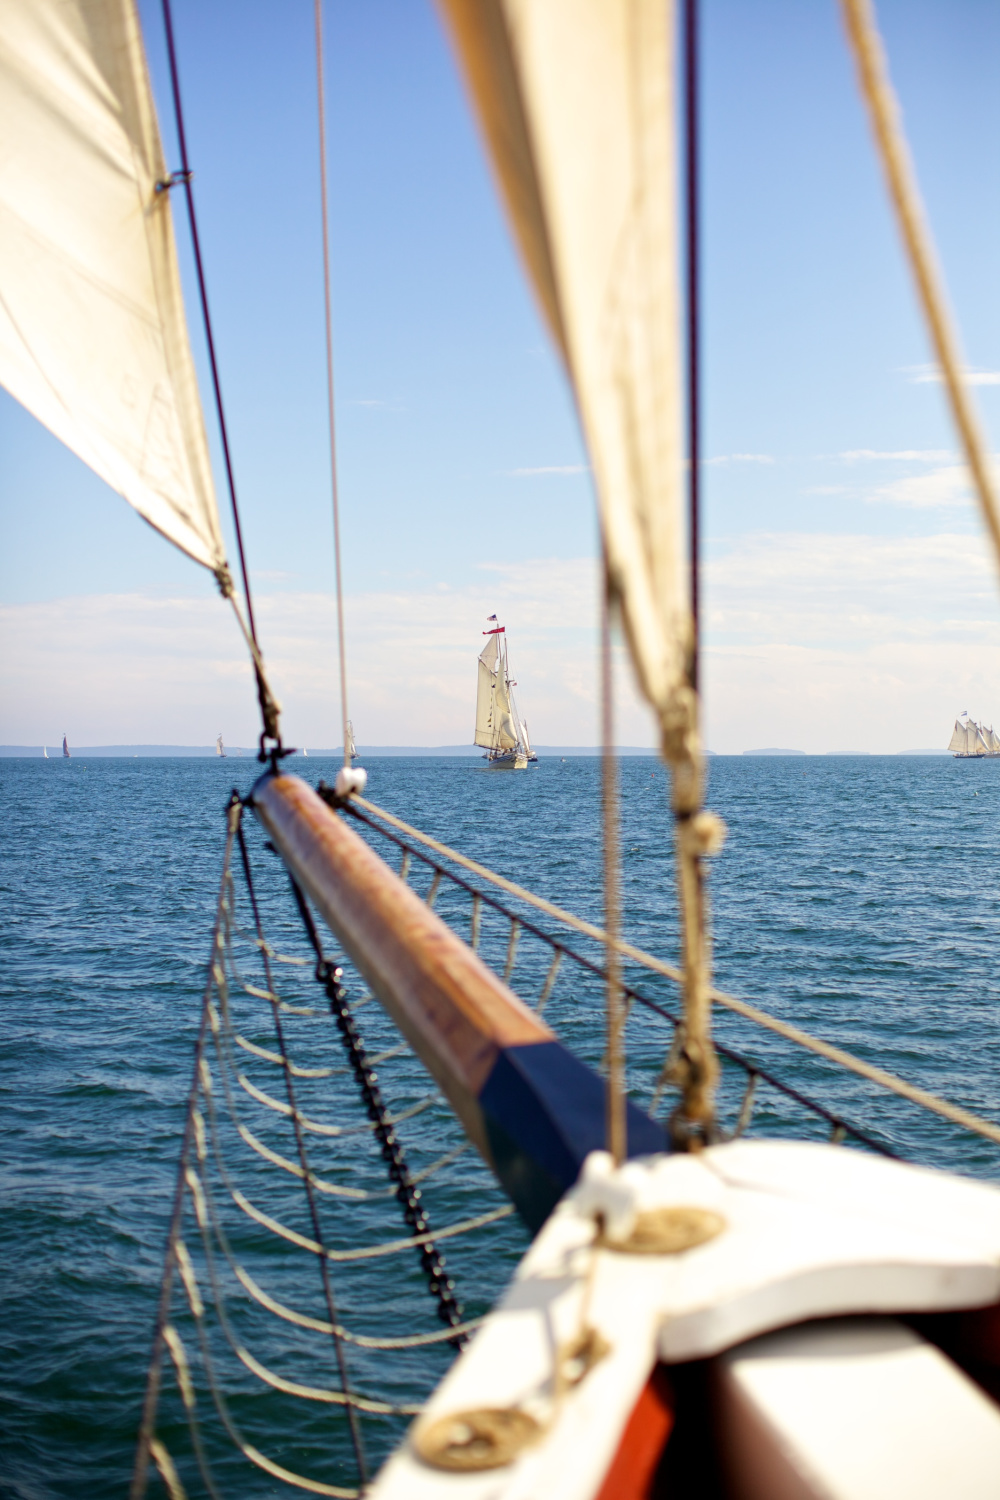 Sailing across Penobscot Bay Photo by Ben Krebs